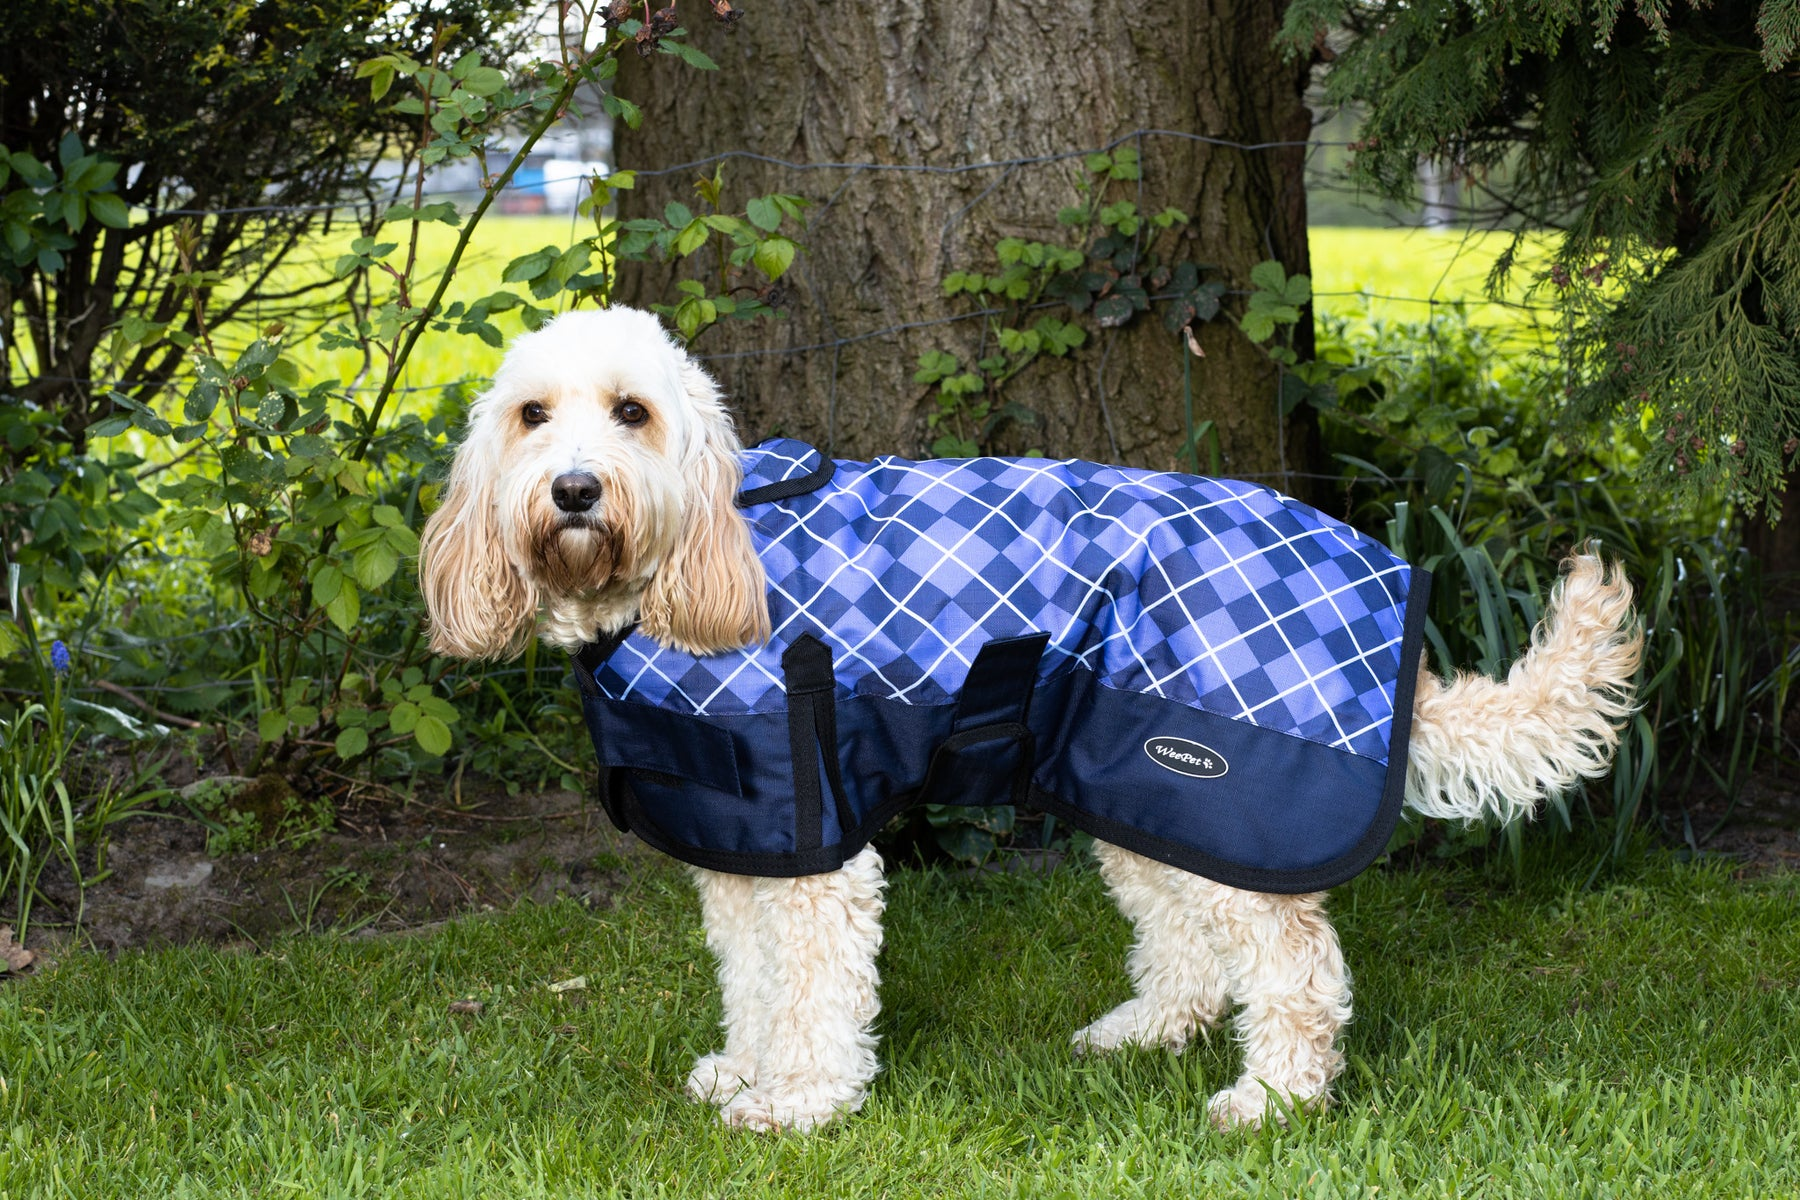 Does your dog need a dog coat?